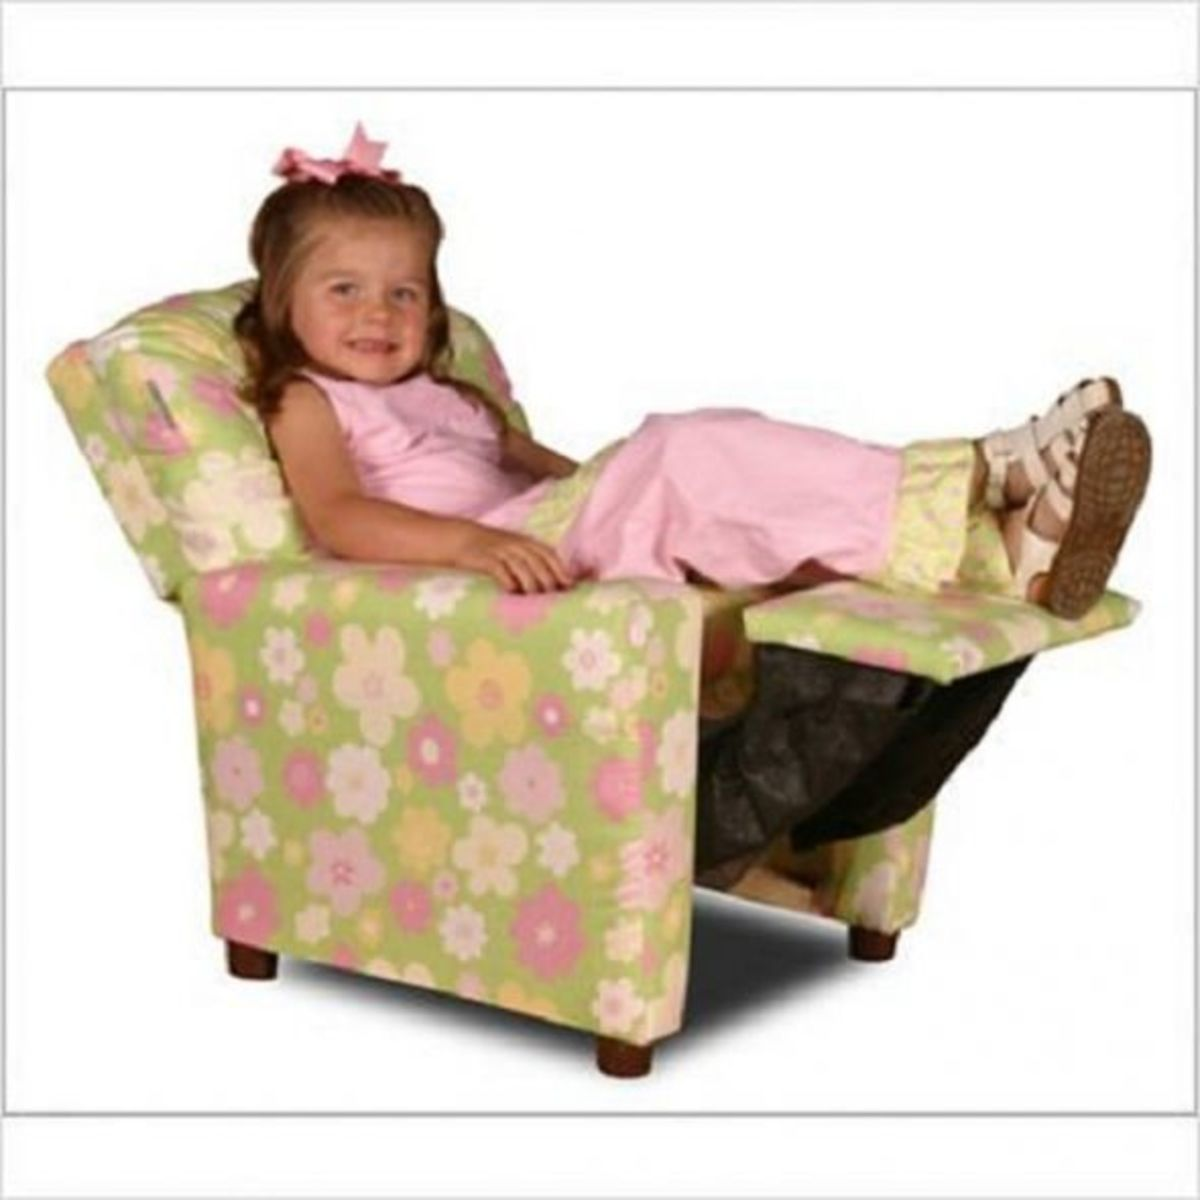 Reclining floral print childrenâs chair